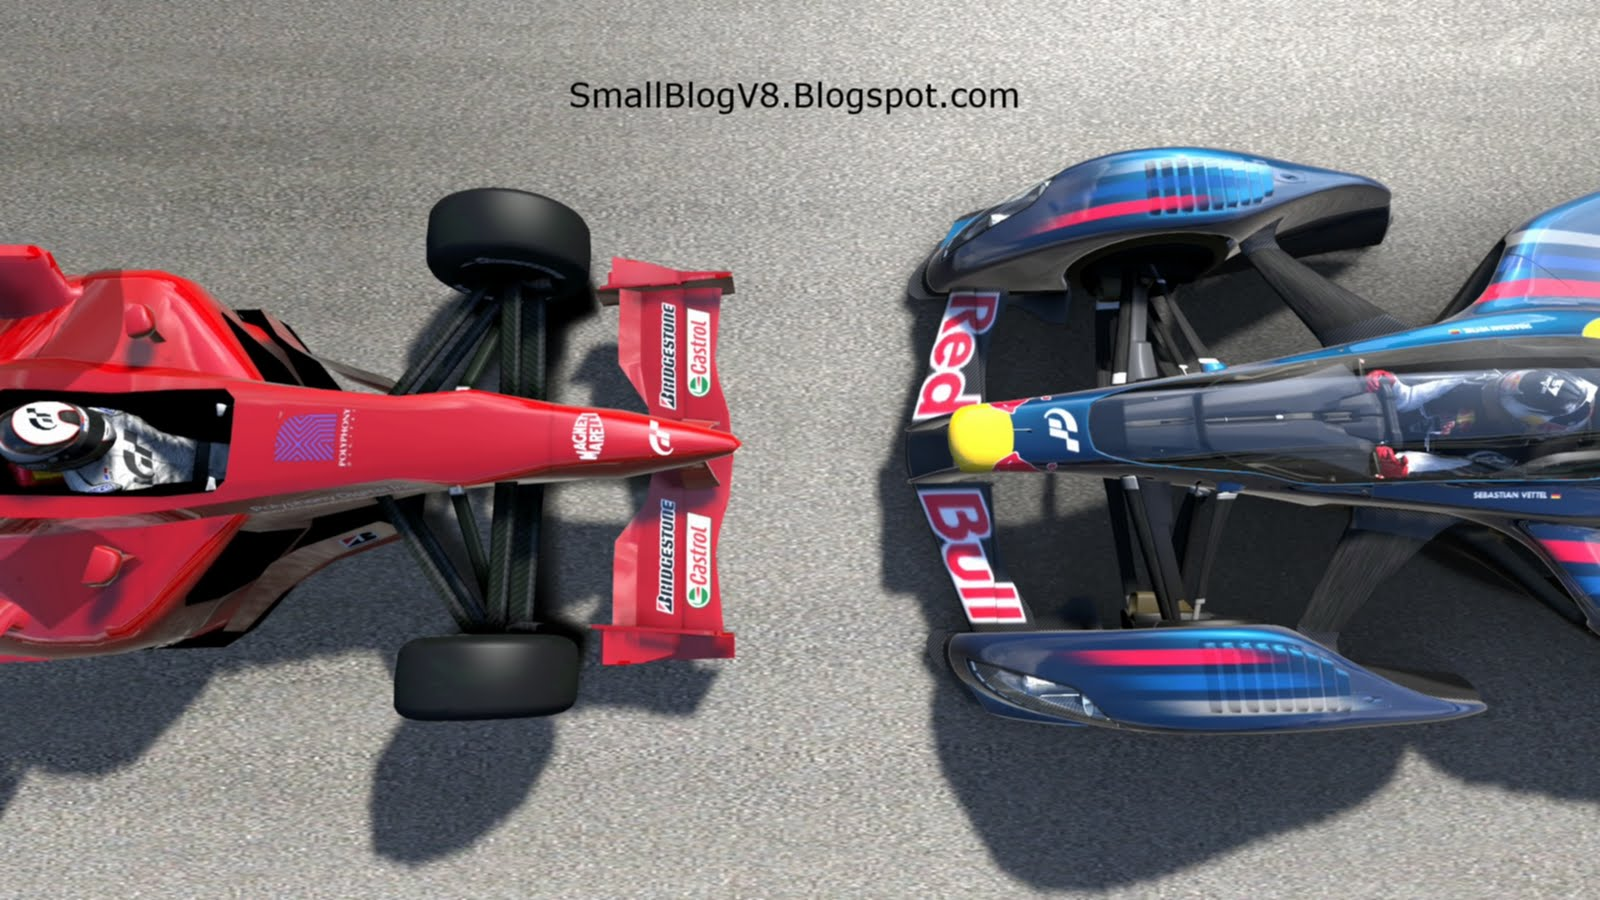 Racing drivers donu0027t appear to be into eye contact much. & Small Blog V8: F1 versus X1 - Whatu0027s The Difference?